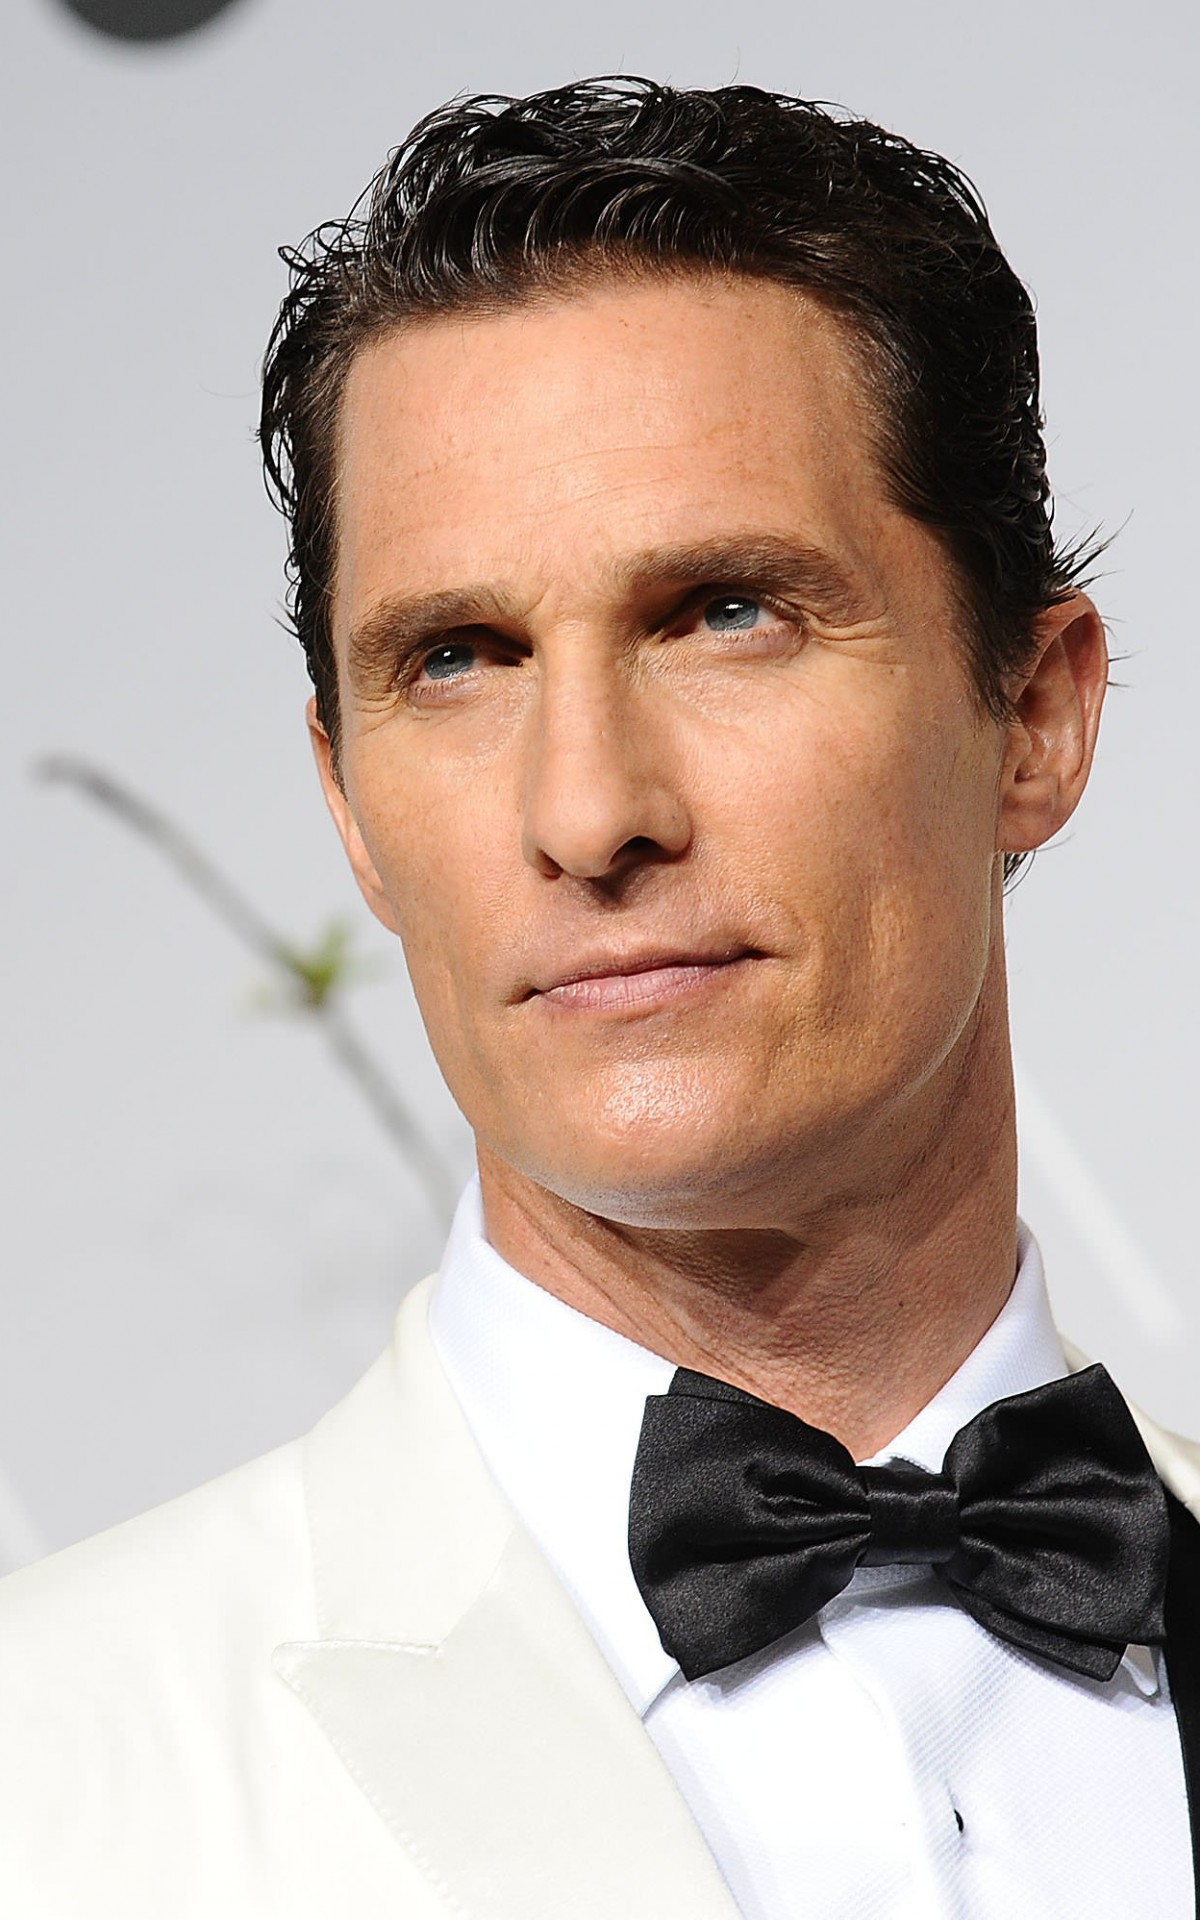 Matthew Mcconaughey in White Tuxedo Wallpaper for Amazon Kindle Fire HDX